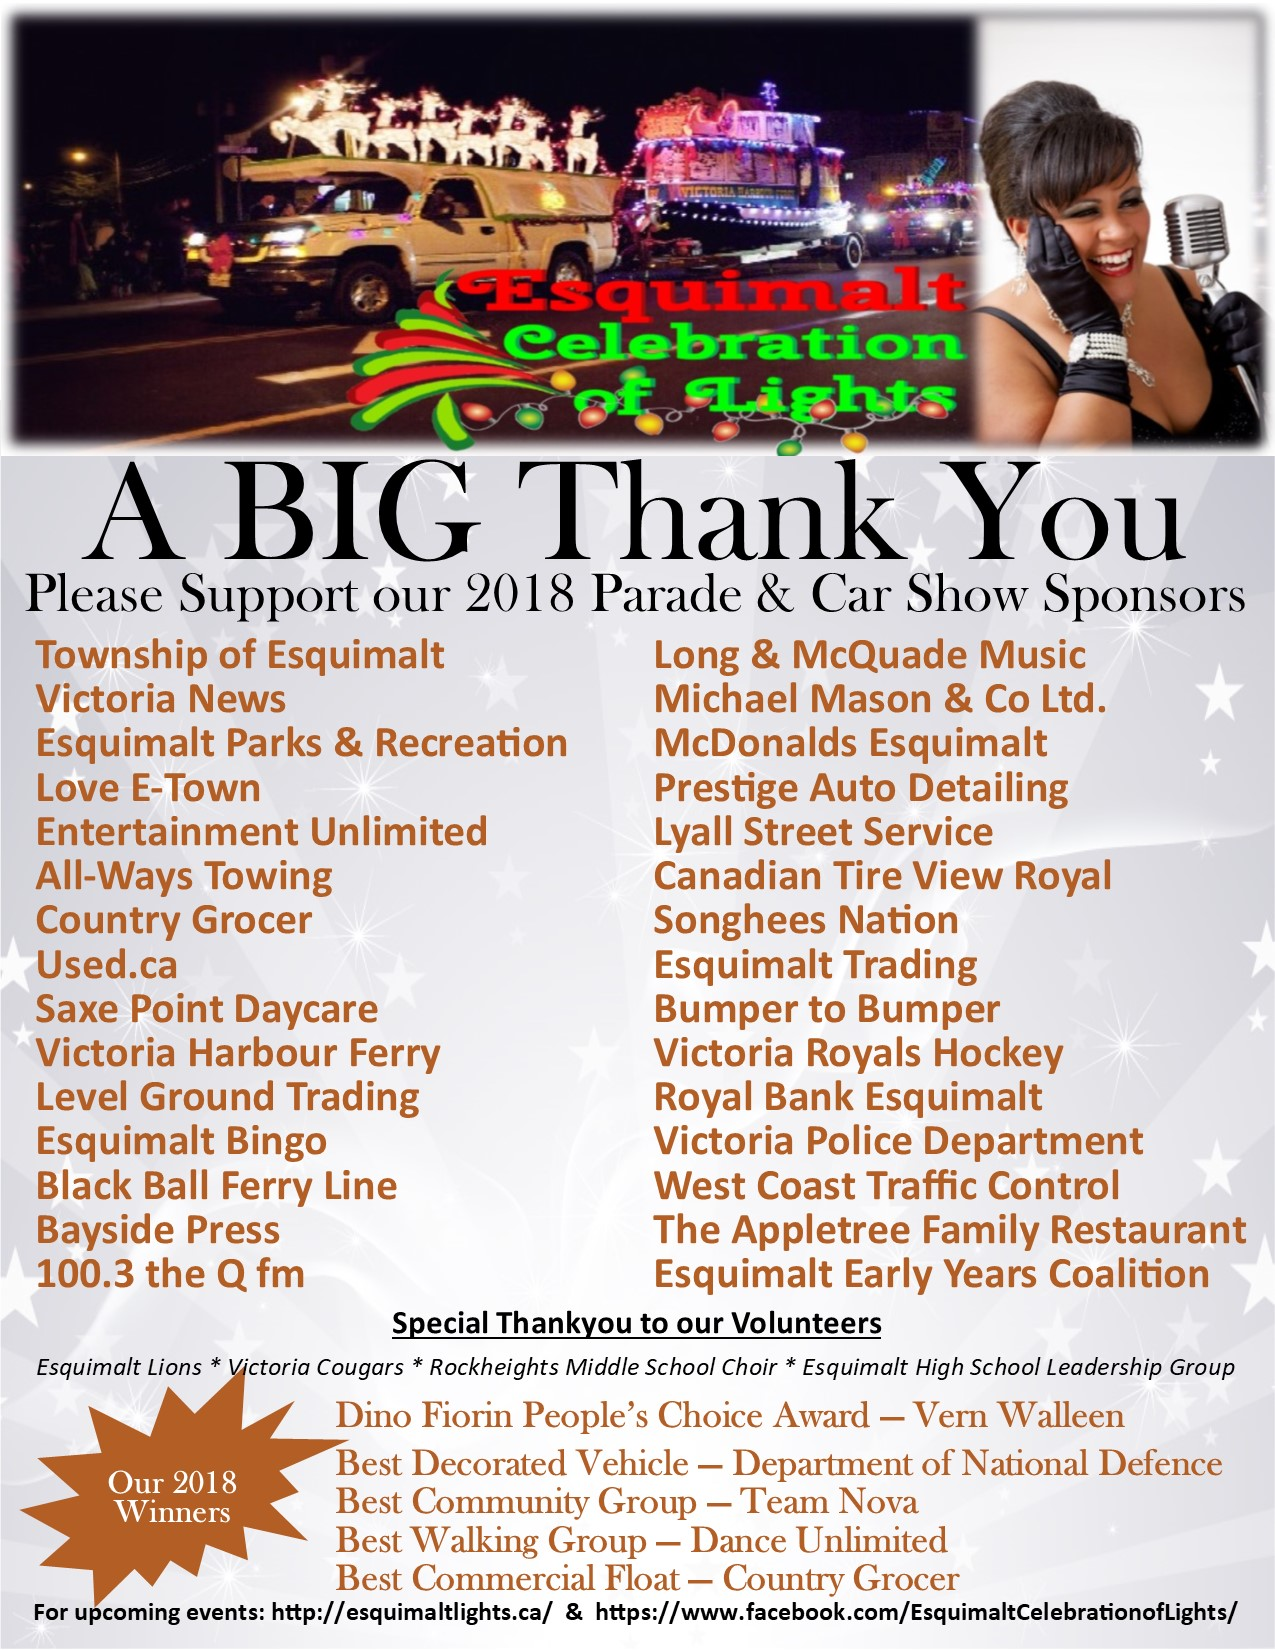 Thank you from Esquimalt Celebration of Lights